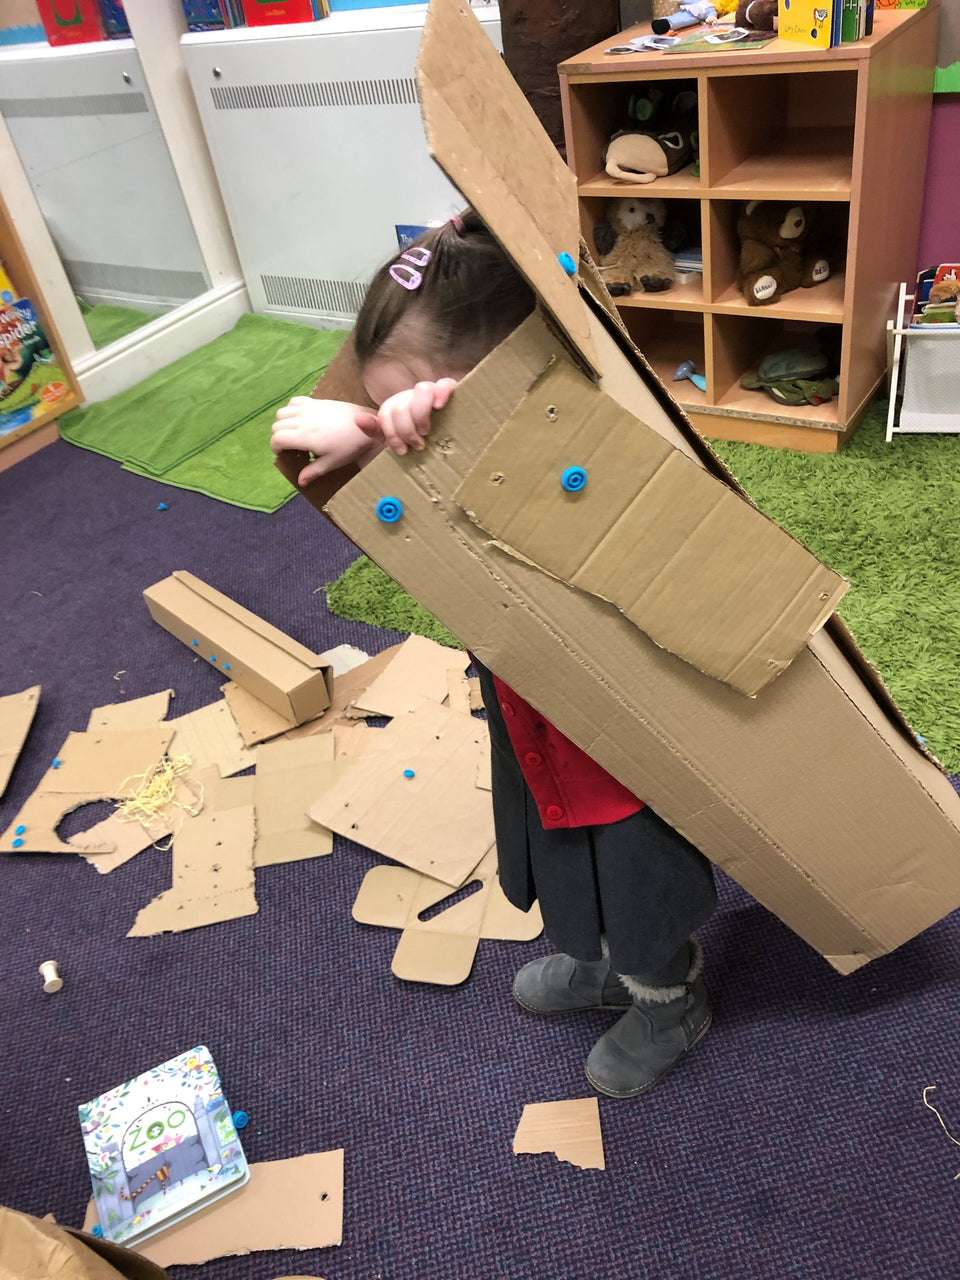 Cardboard Robot Costume testing phase using Makedo cardboard construction